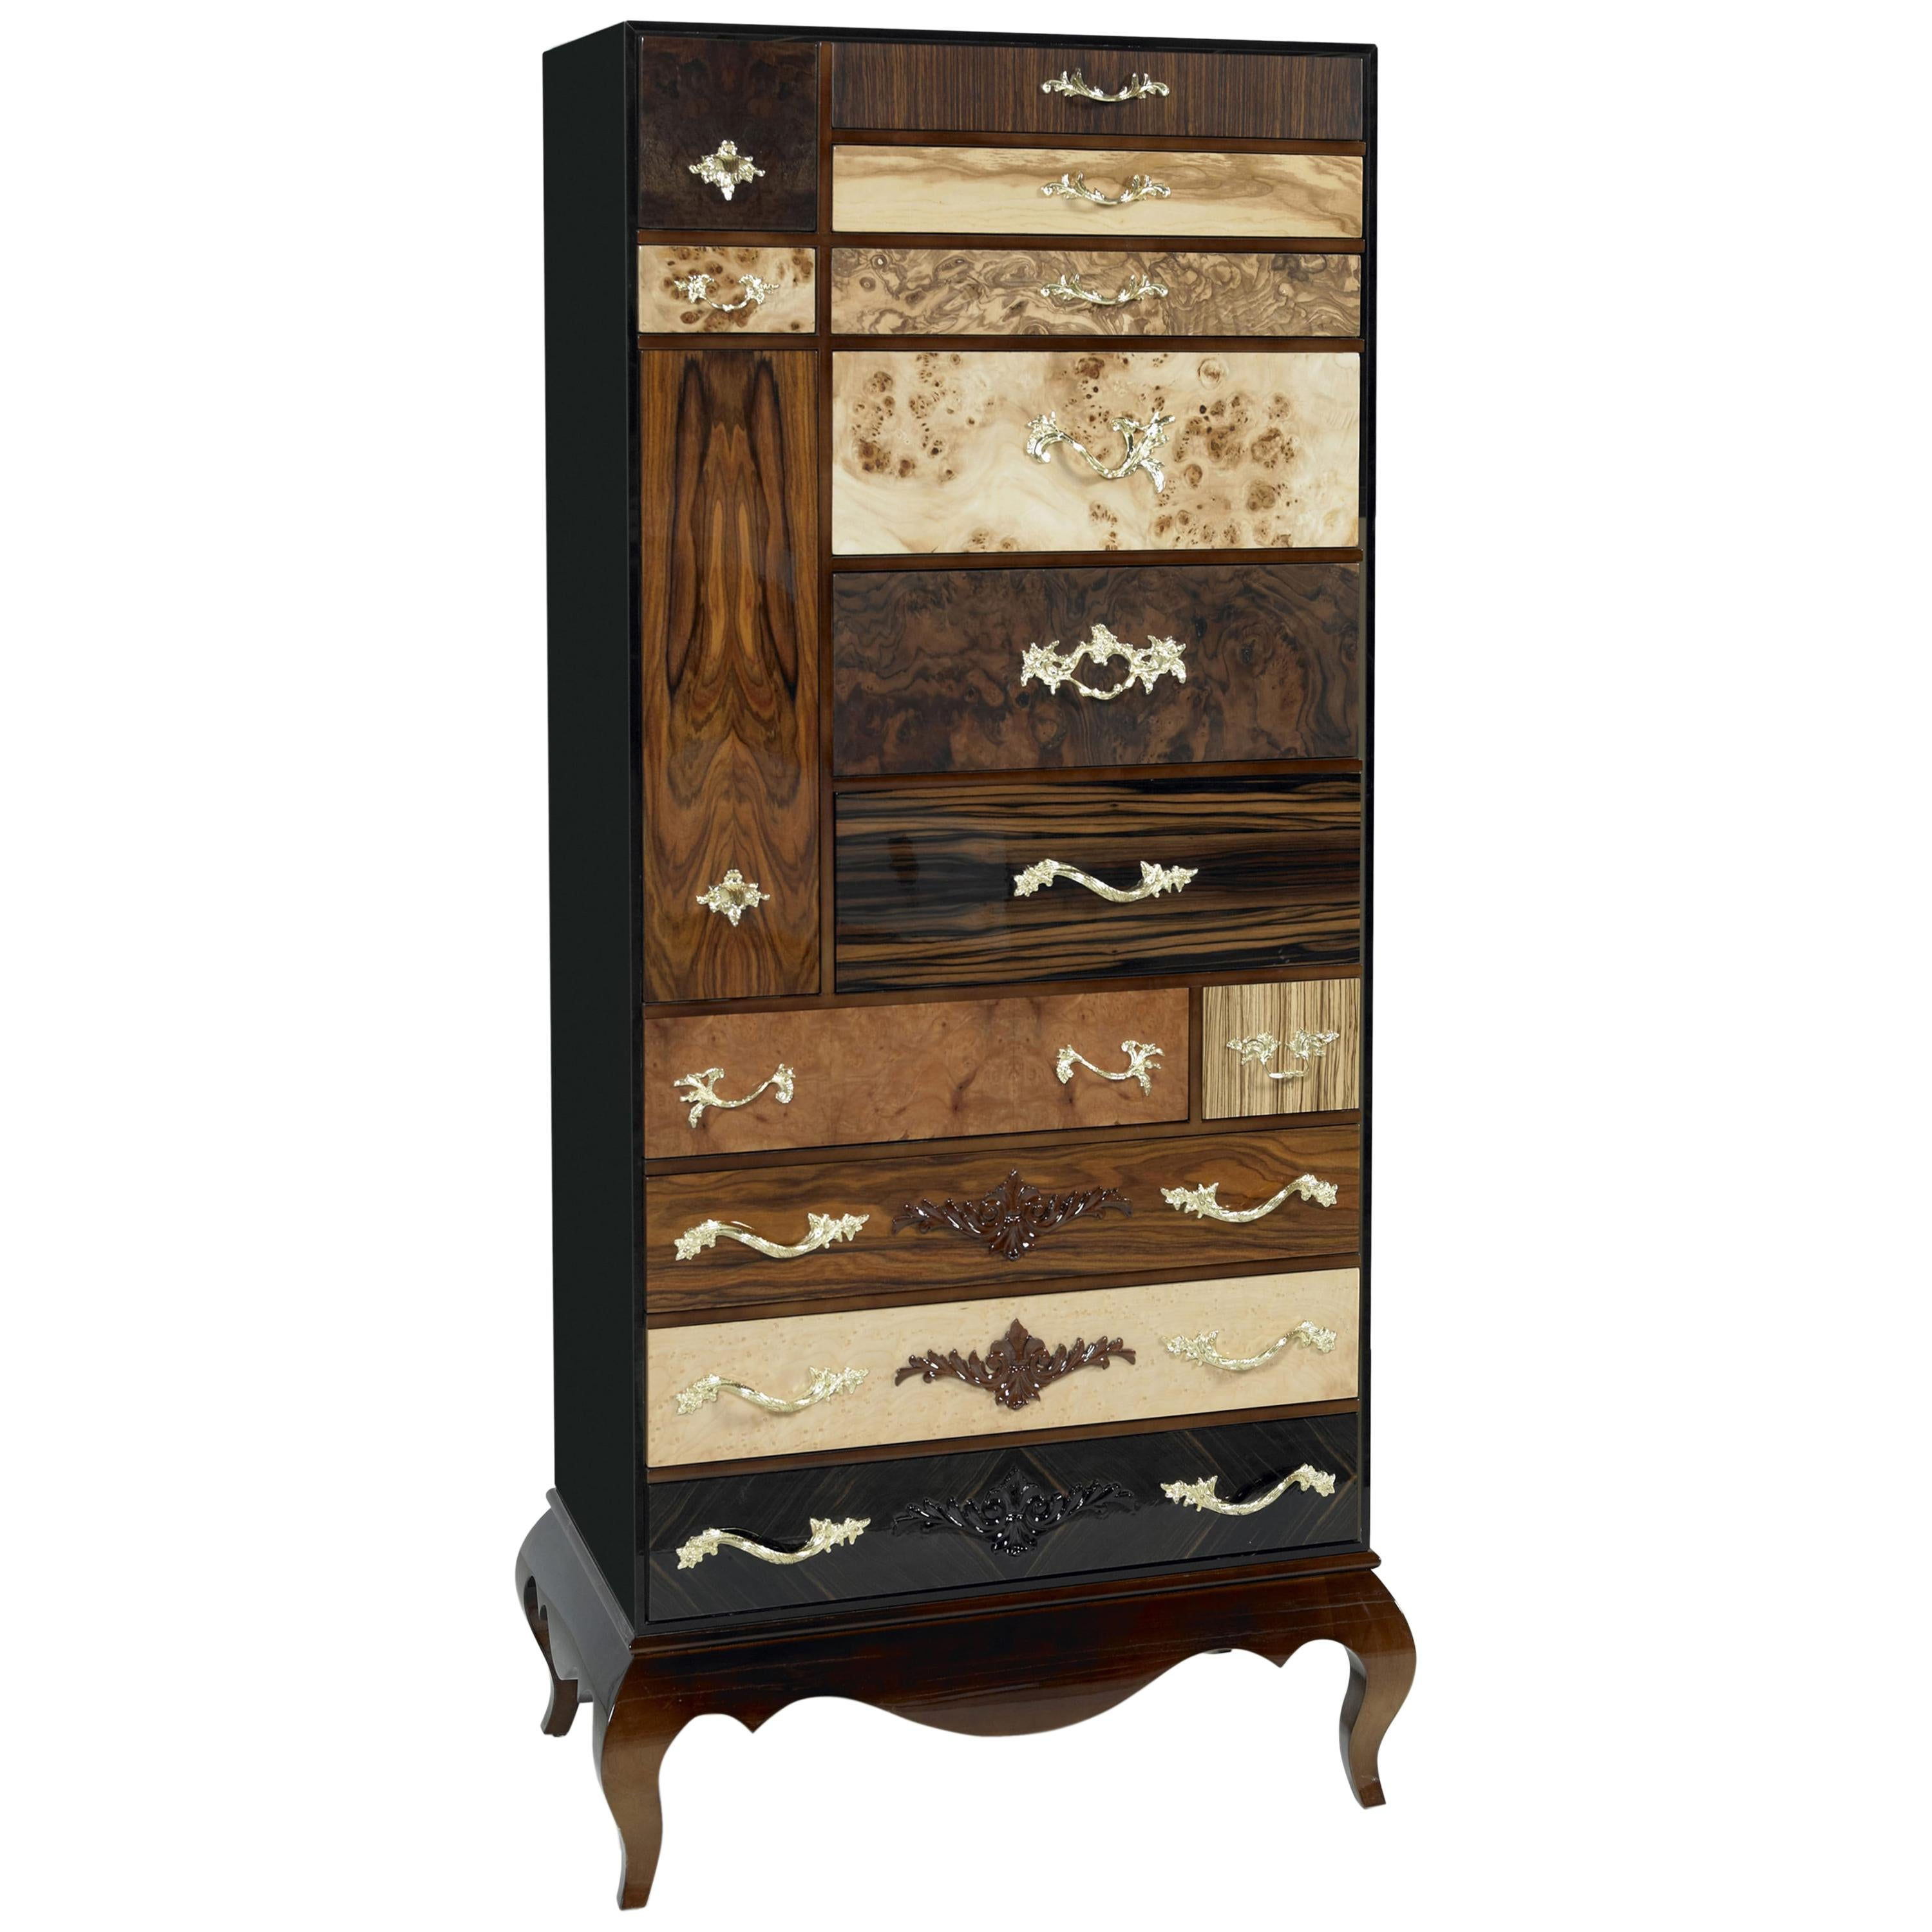 Queens cabinet and dresser in lacquered wood by boca do lobo for sale at 1stdibs